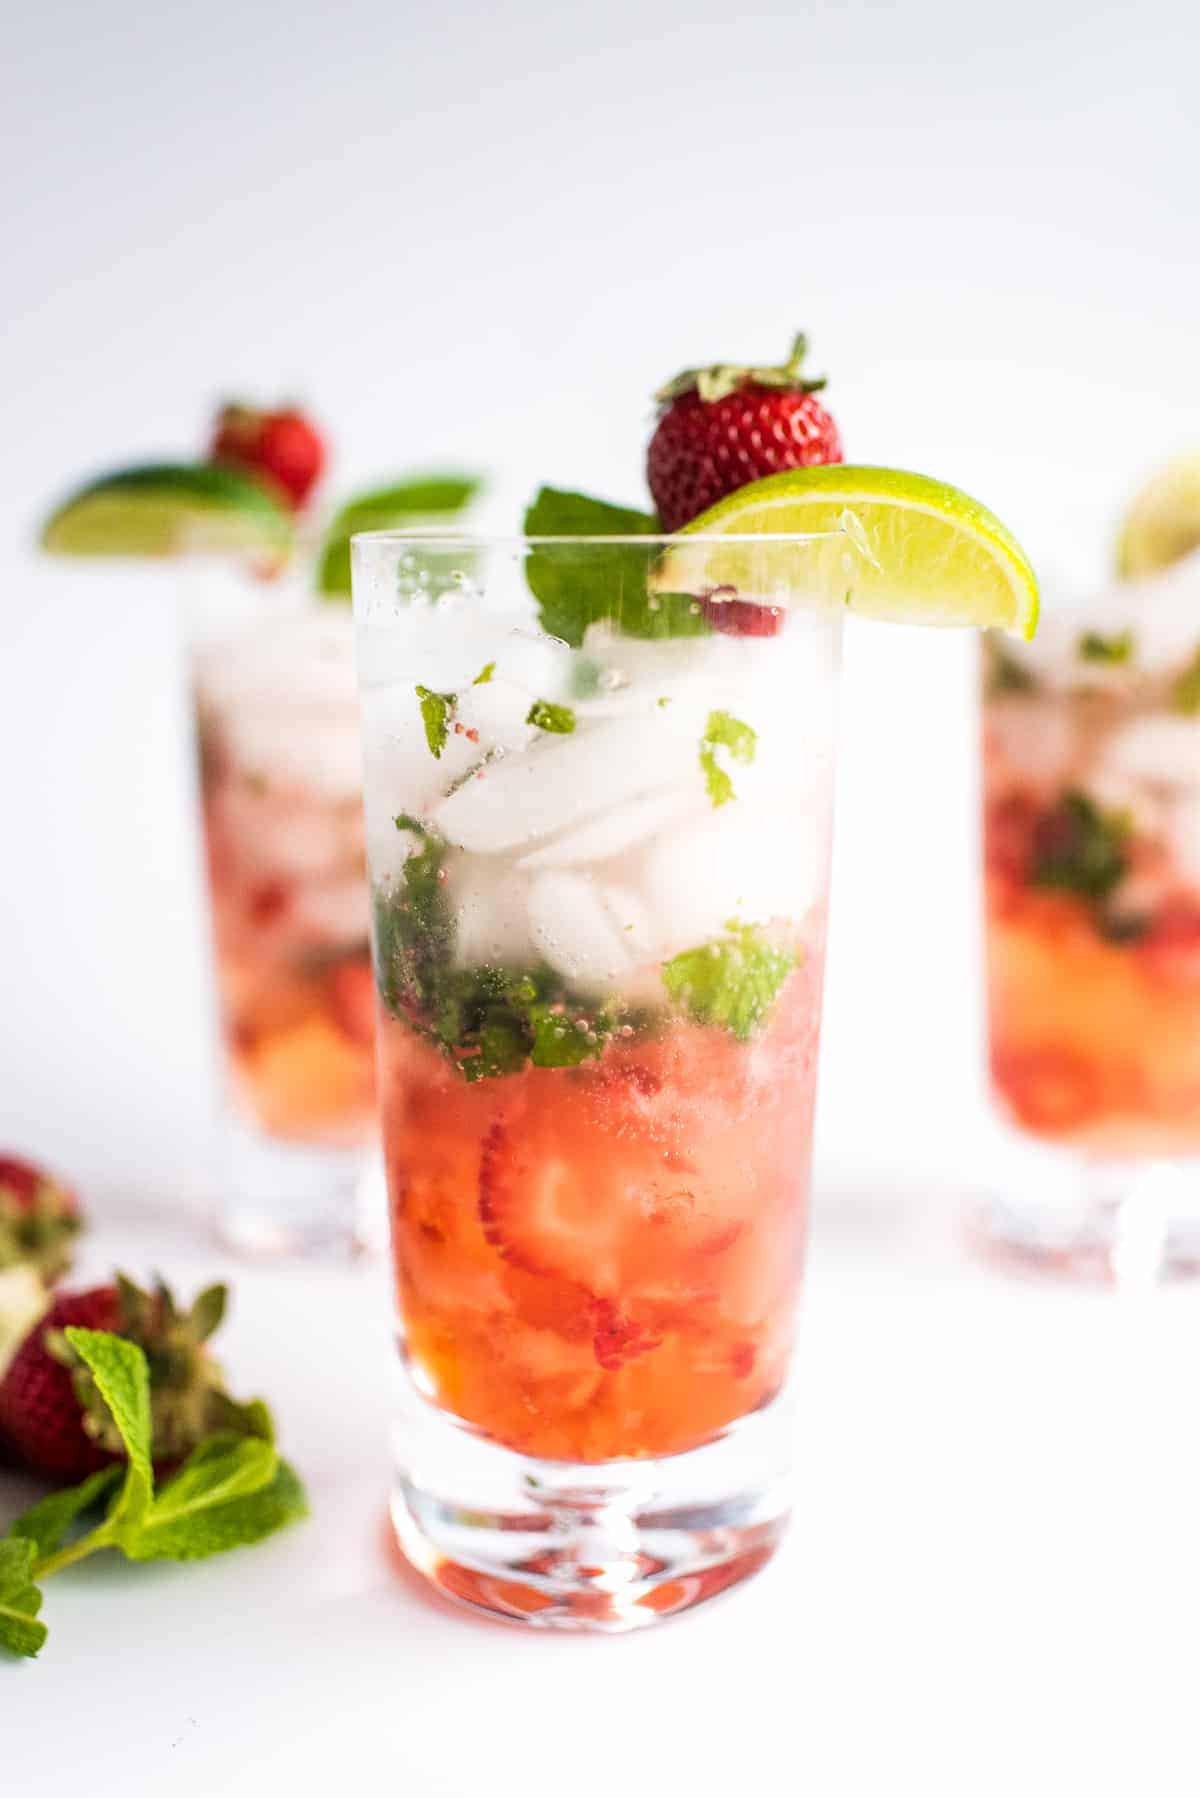 Tall glass with strawberry  mojito garnished with lime and strawberry